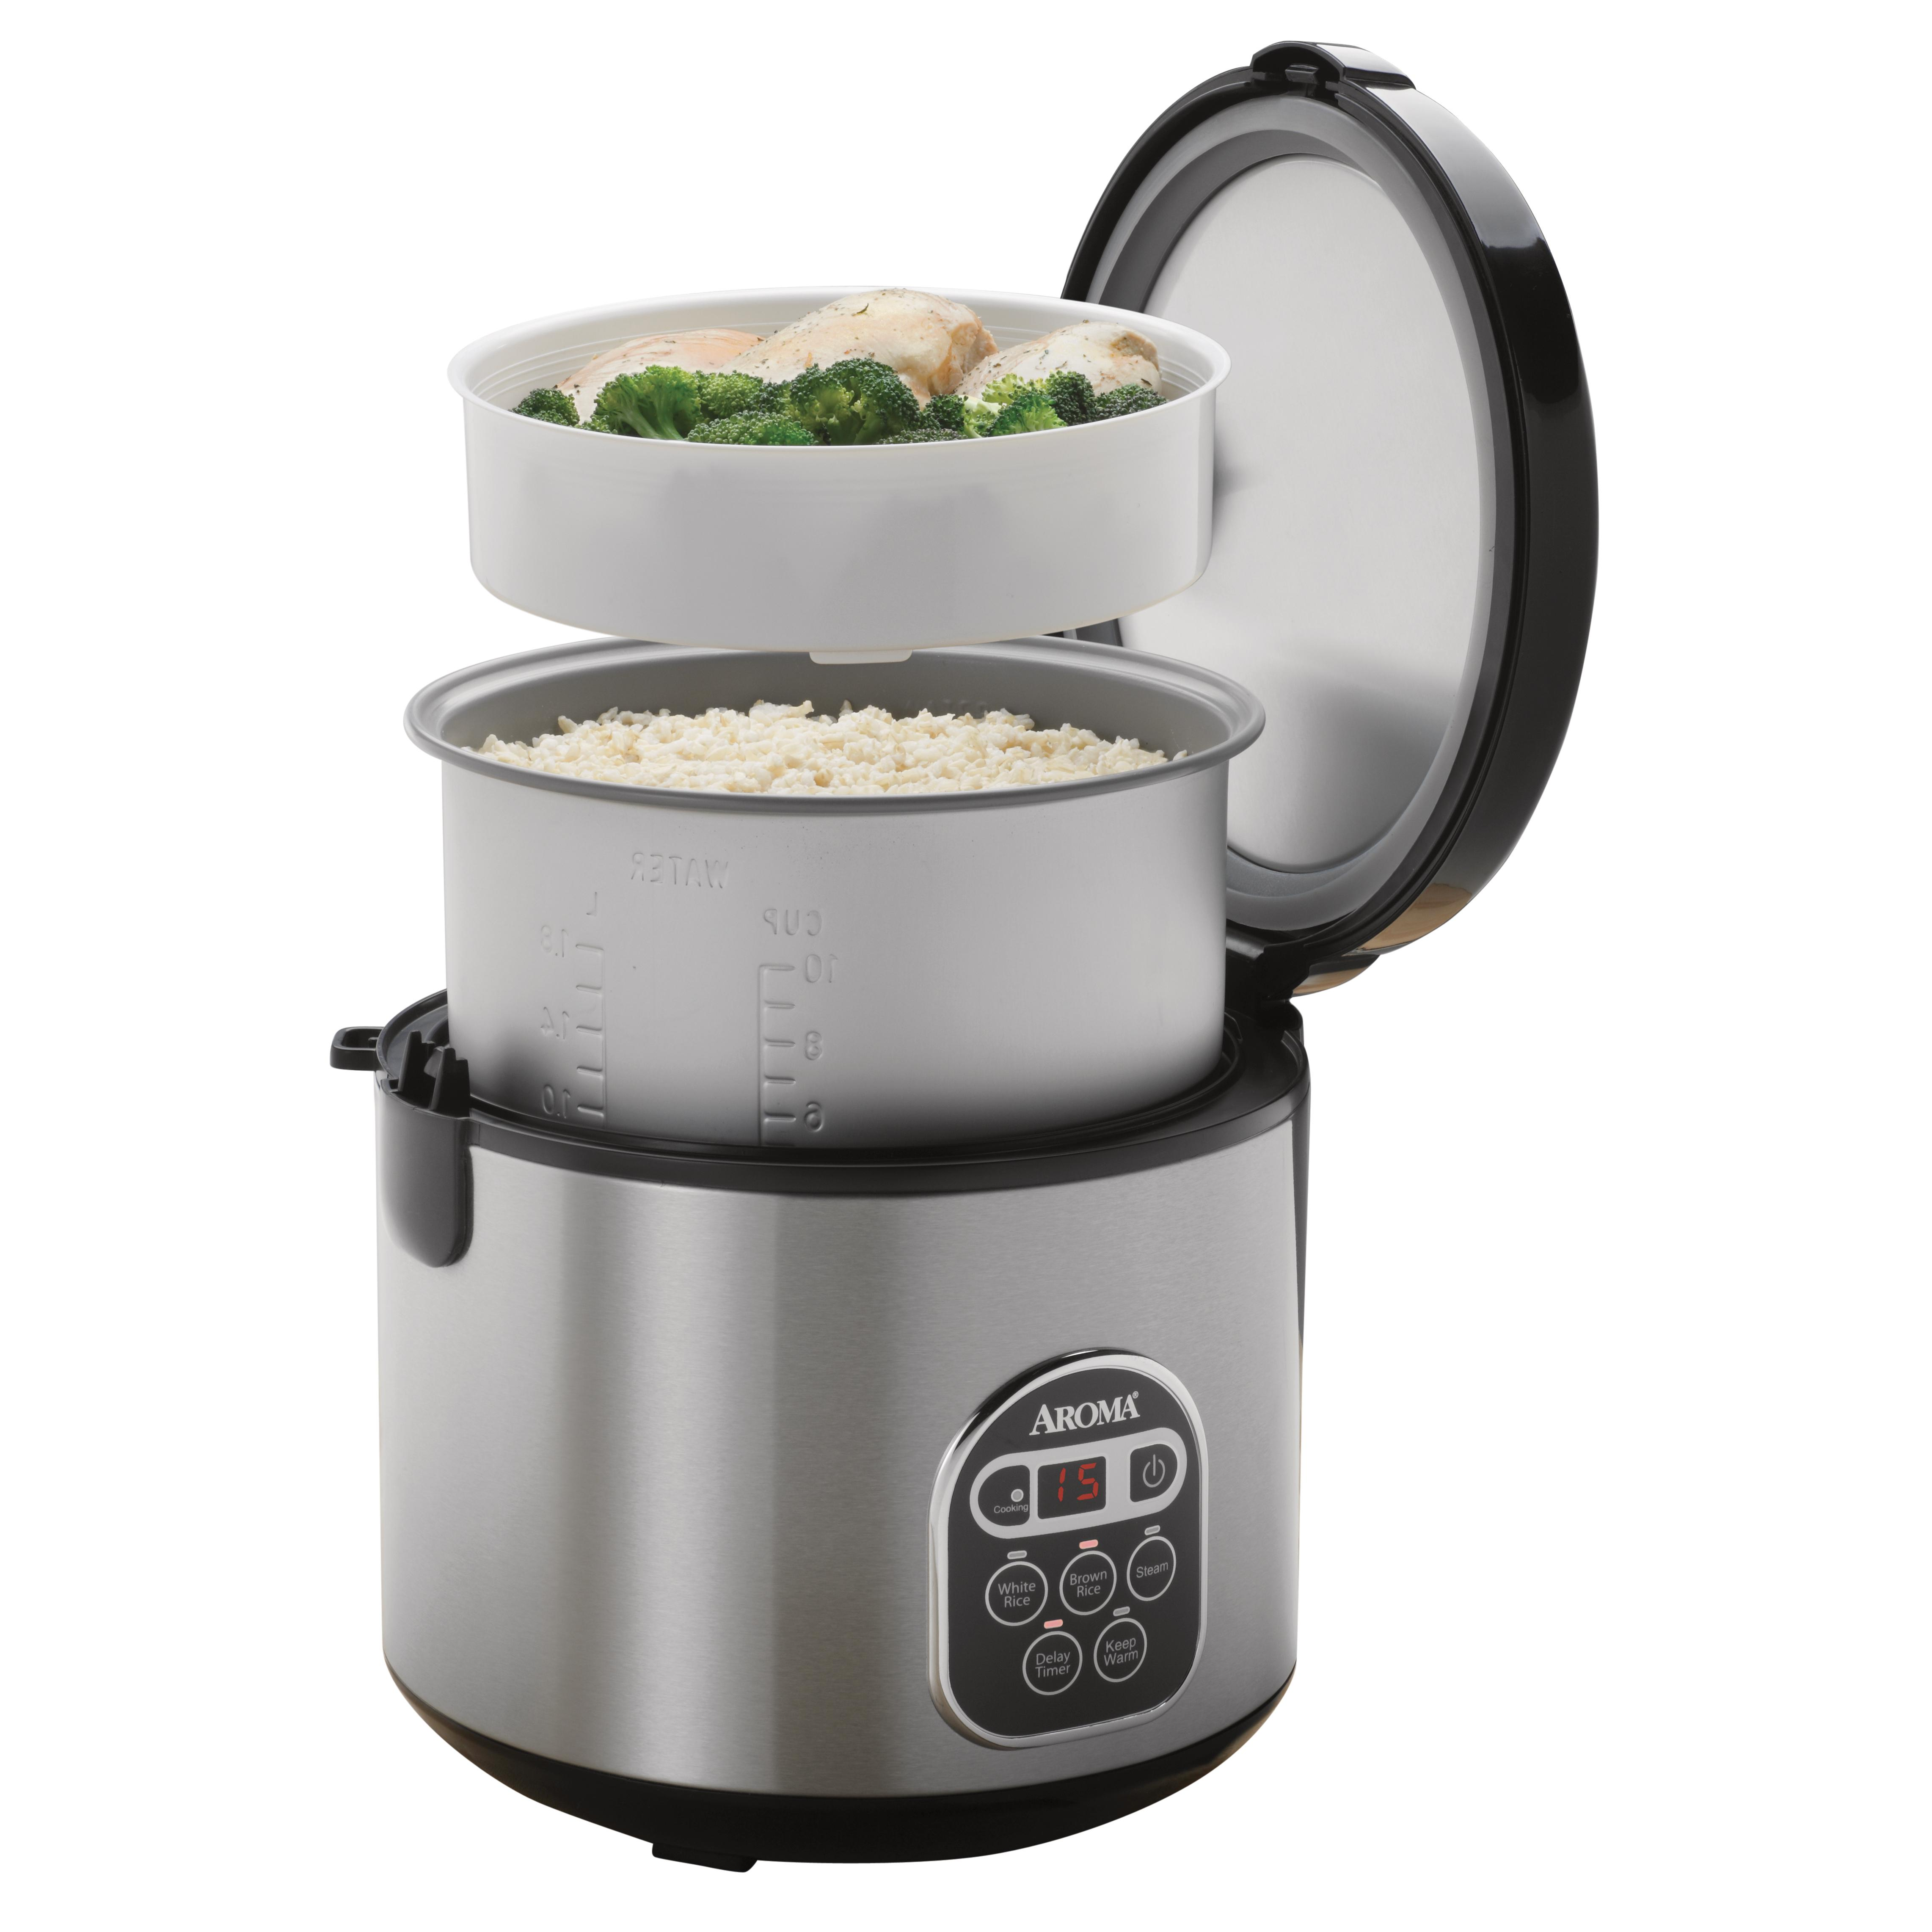 aroma housewares 20 cup cooked 10 cup uncooked digital rice cooker slow cooker. Black Bedroom Furniture Sets. Home Design Ideas